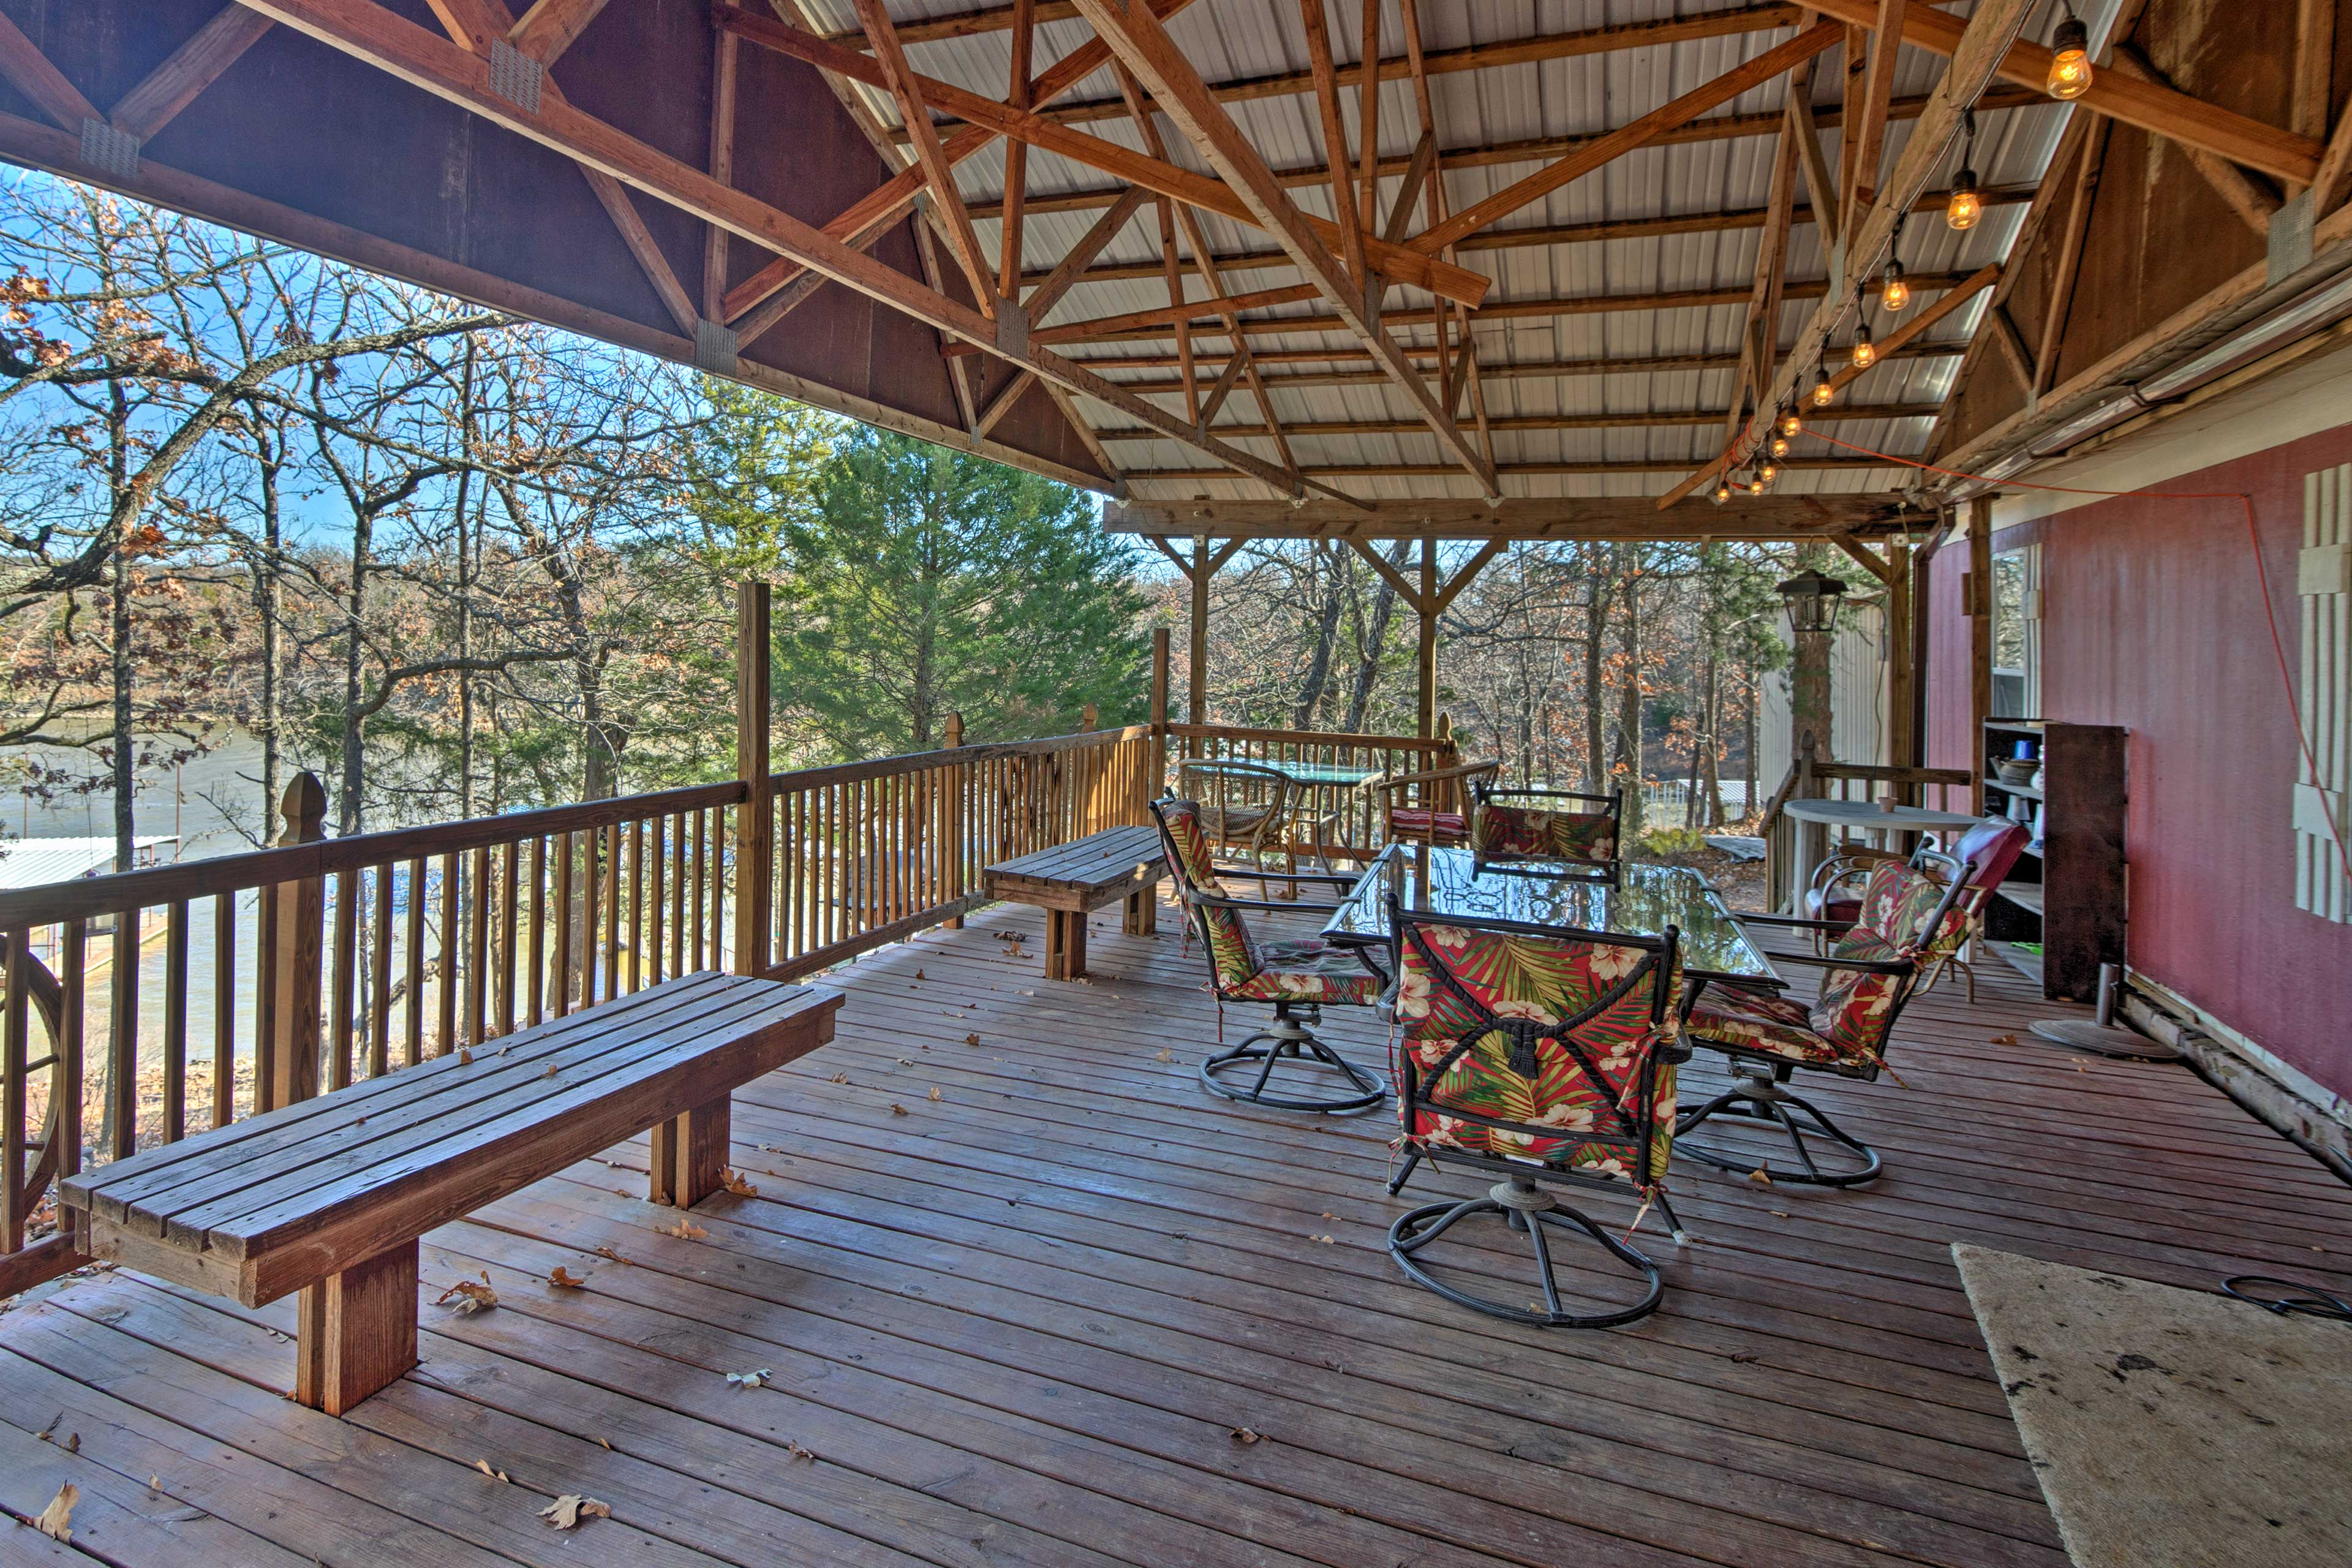 The property features a deck with outdoor seating and views of the lake.